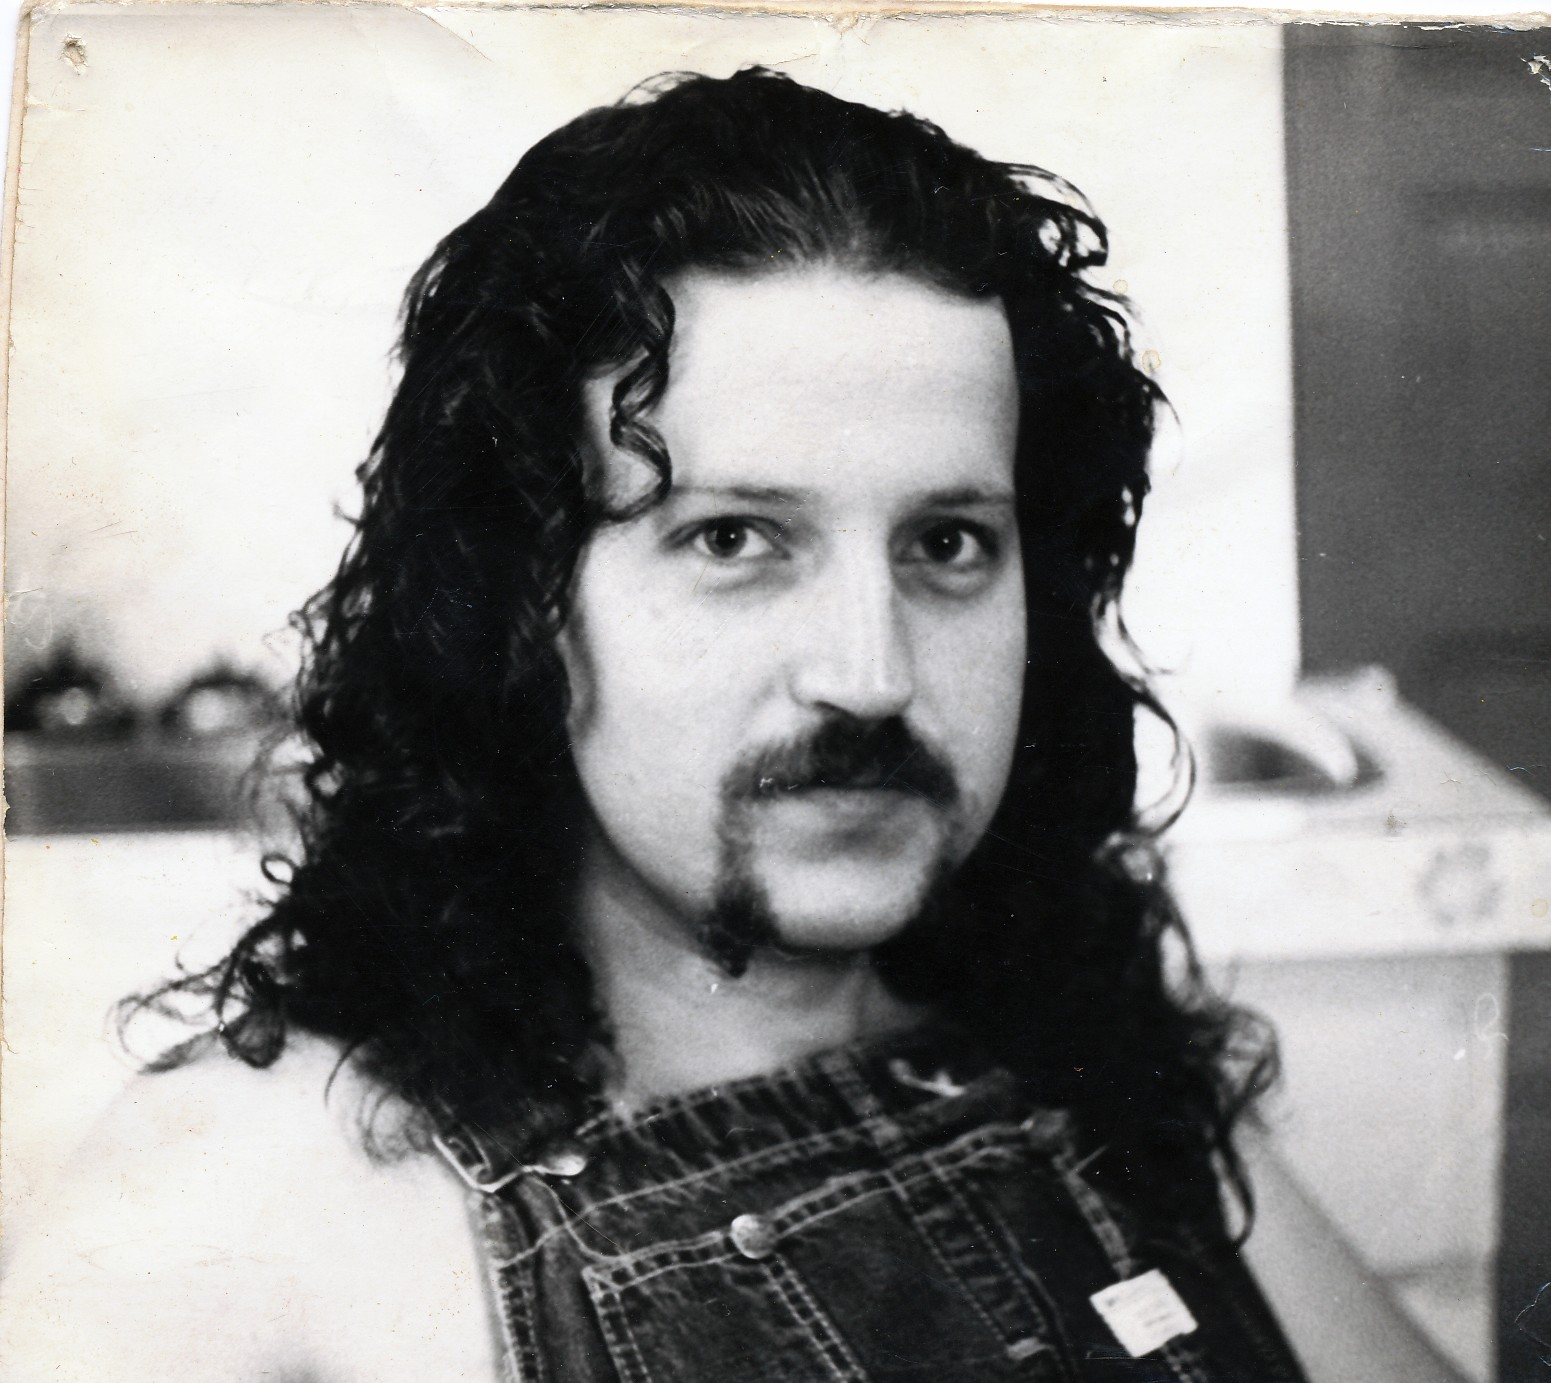 head and shoulders shot of man with thick curly dark hair and facial hair